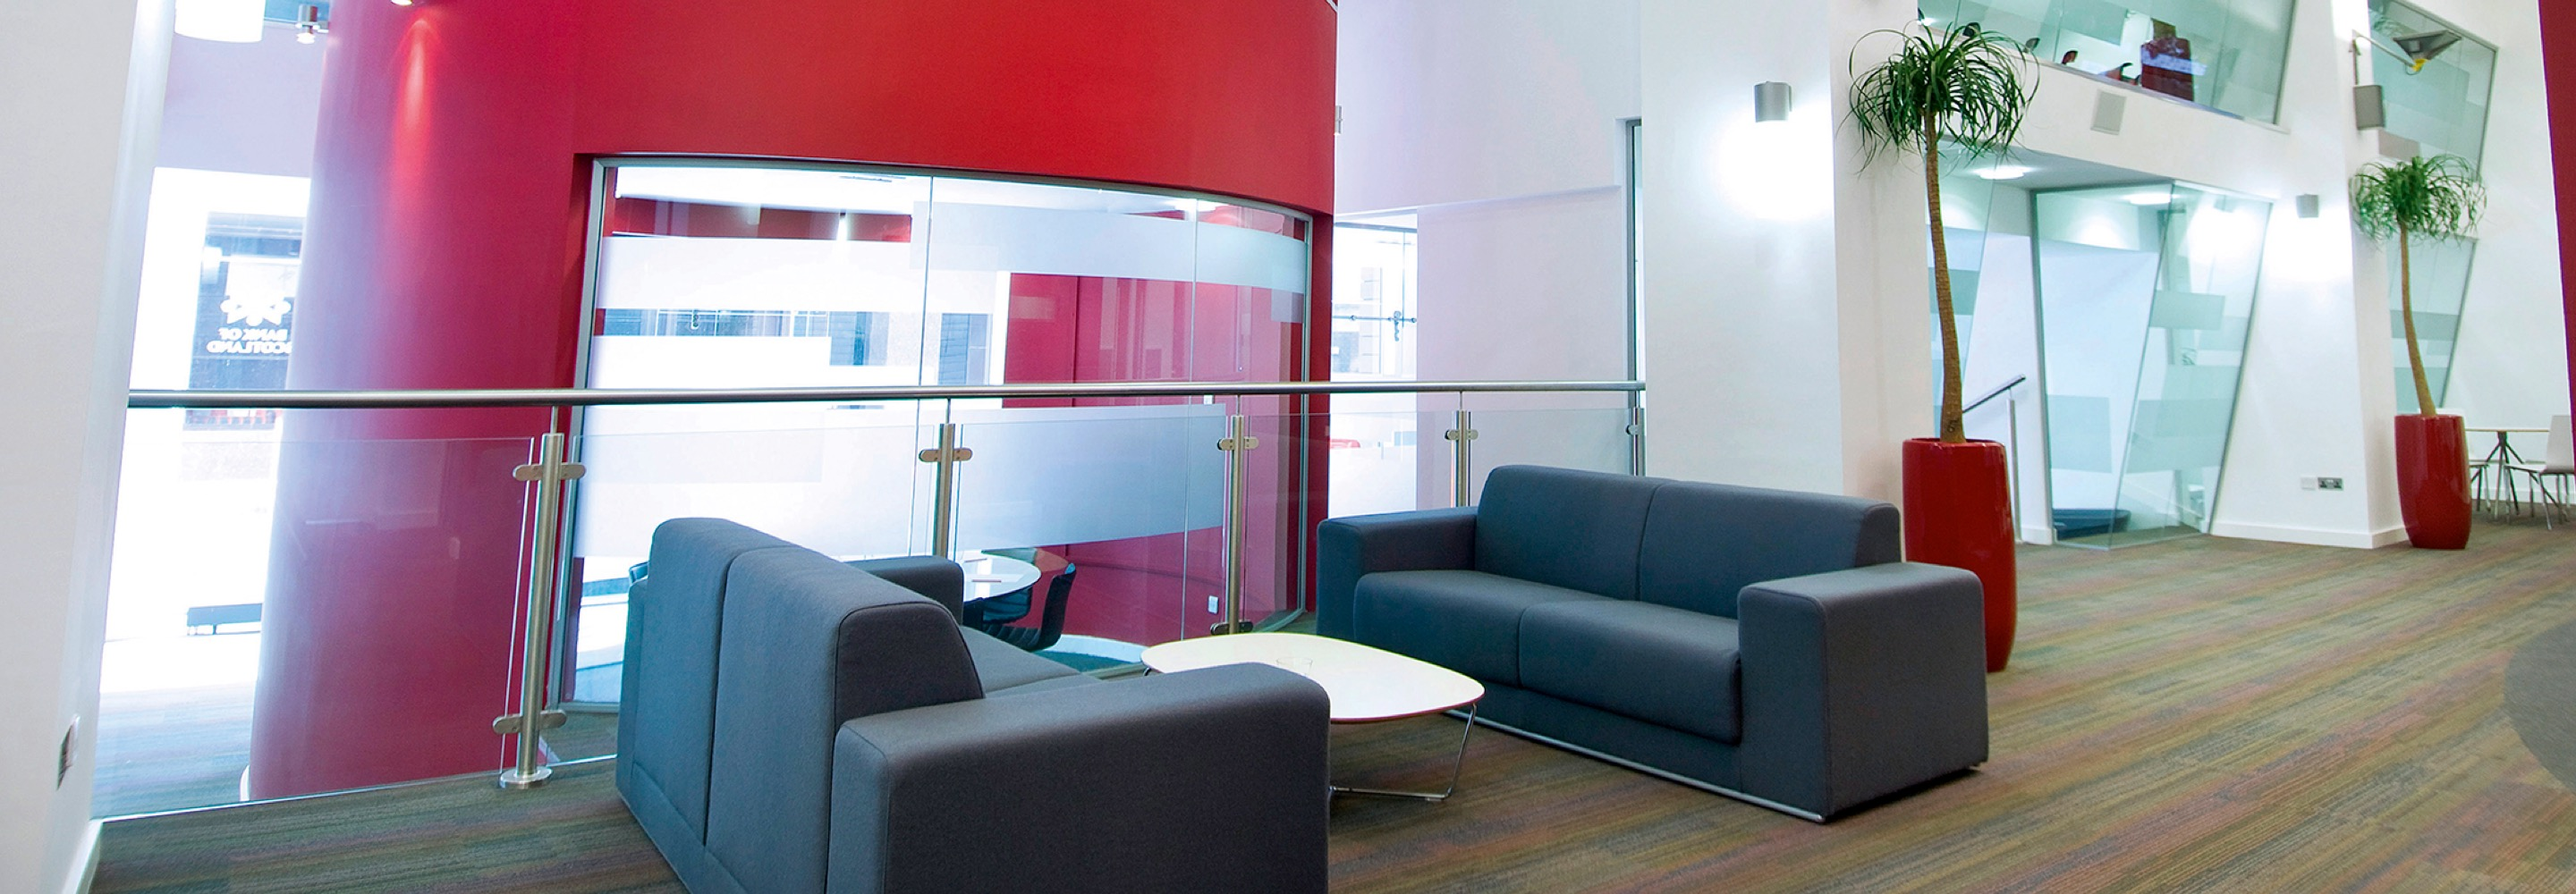 Corporate Interiors Design and Build - office reception and lobby